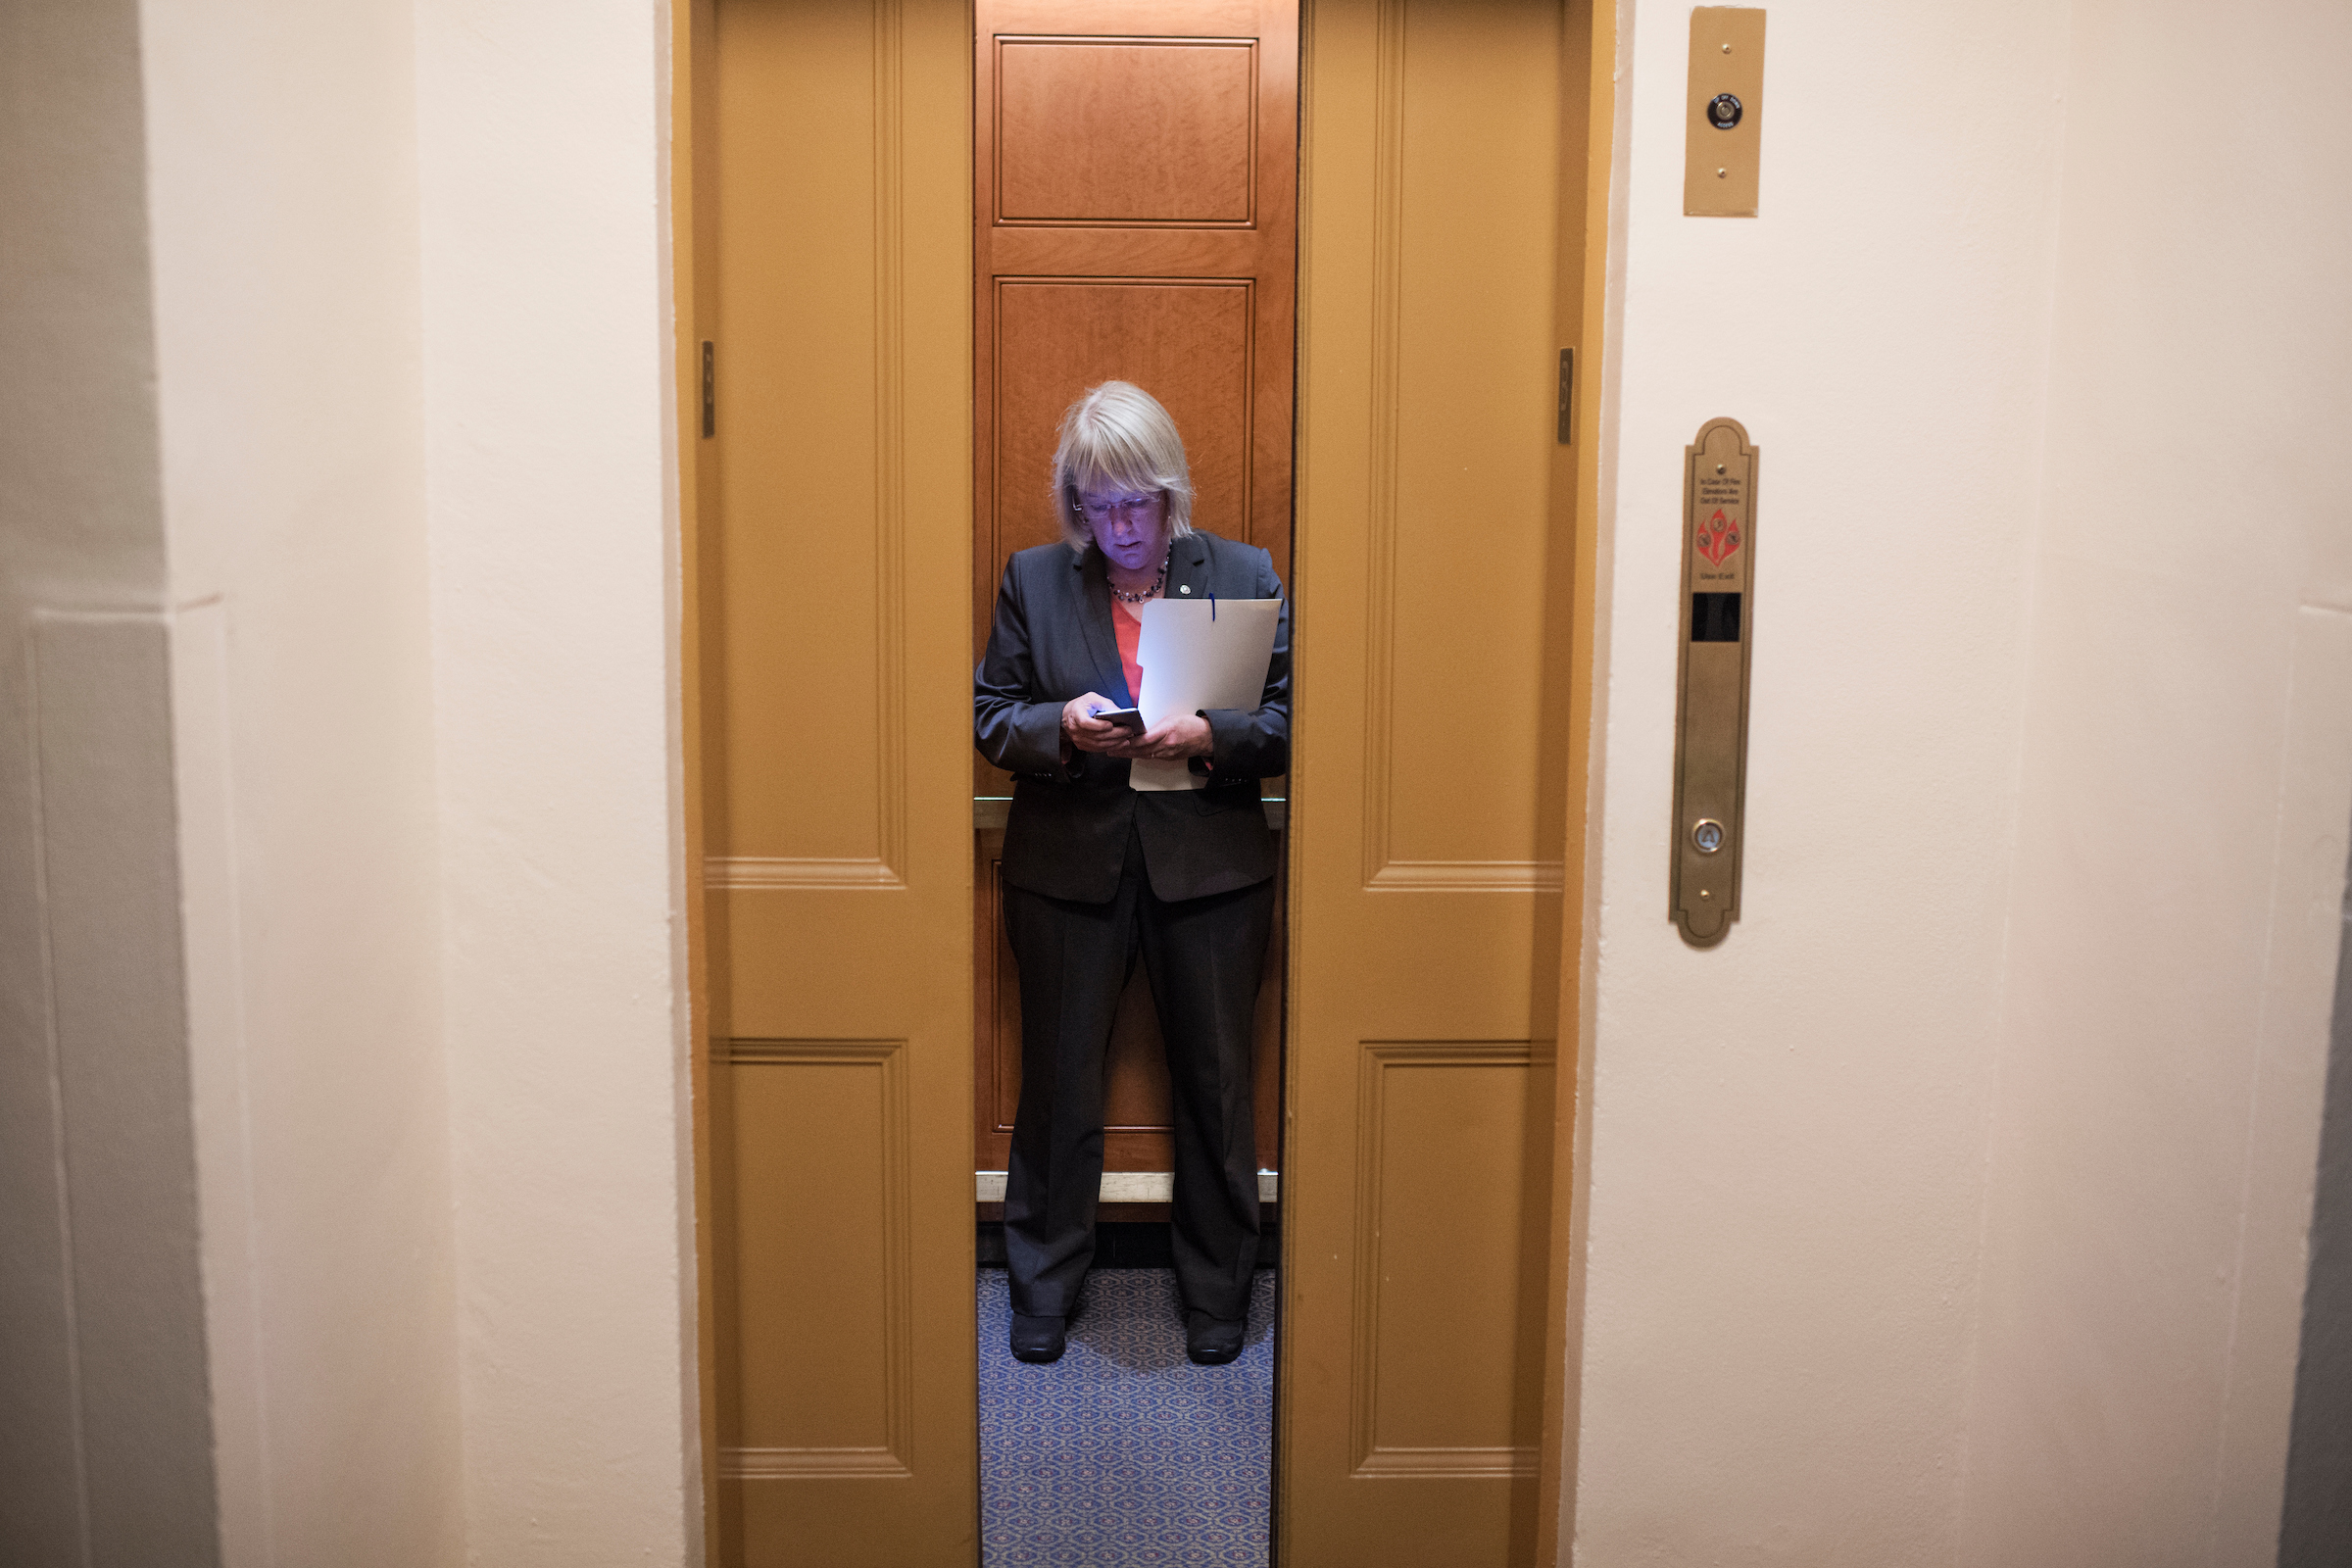 Washington Sen. Patty Murray boards an elevator in the Capitol on Tuesday, Sept. 13, 2016. (Tom Williams/CQ Roll Call)